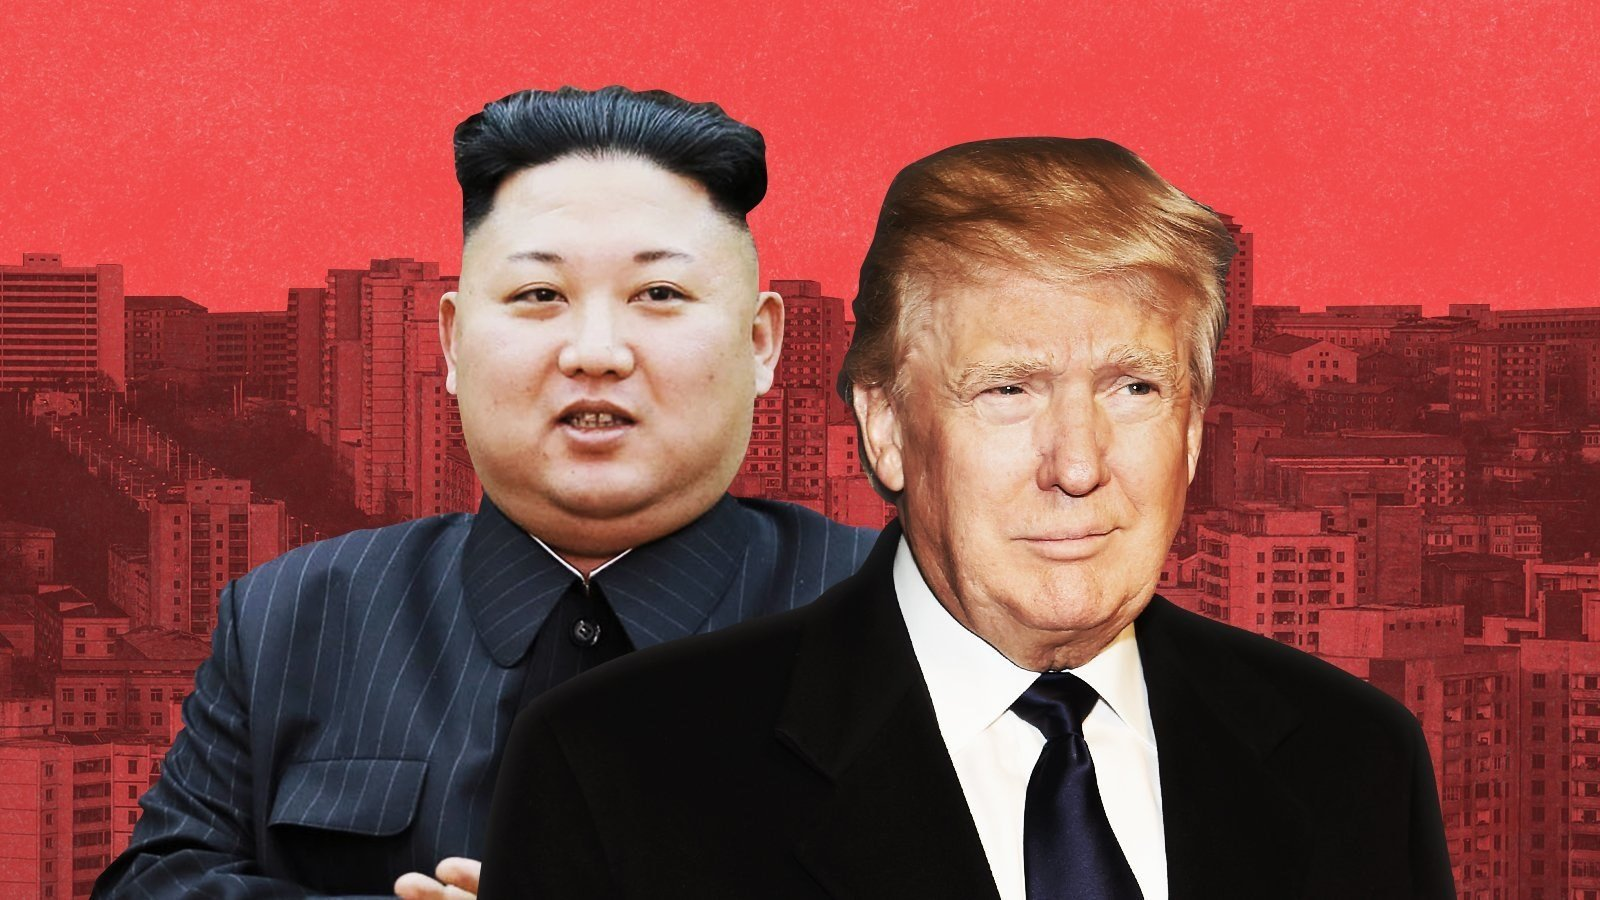 President Donald Trump will meet with North Korean leader Kim Jong Un by May, the South Korean national security adviser announced Thursday at the White House.